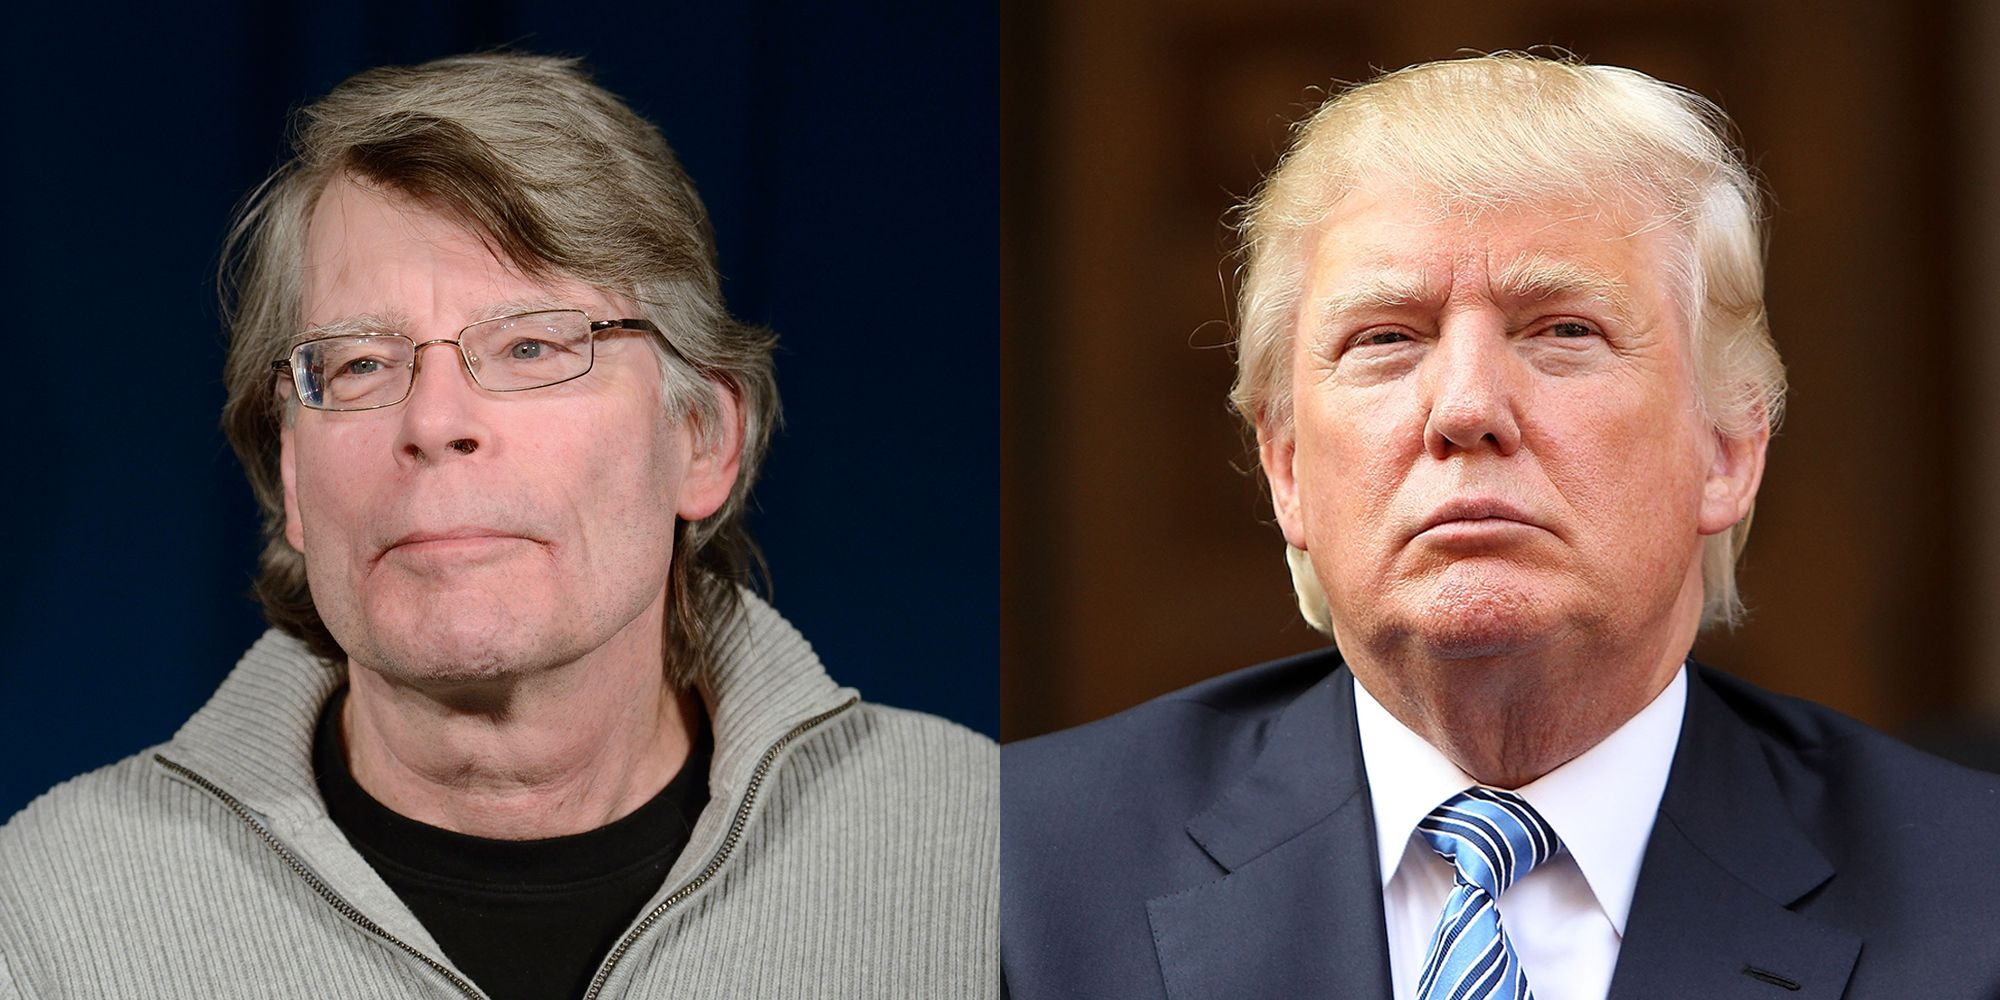 Stephen King Was Writing A Horror Story About Imprisoning Children. Then Trump Actually Did it.